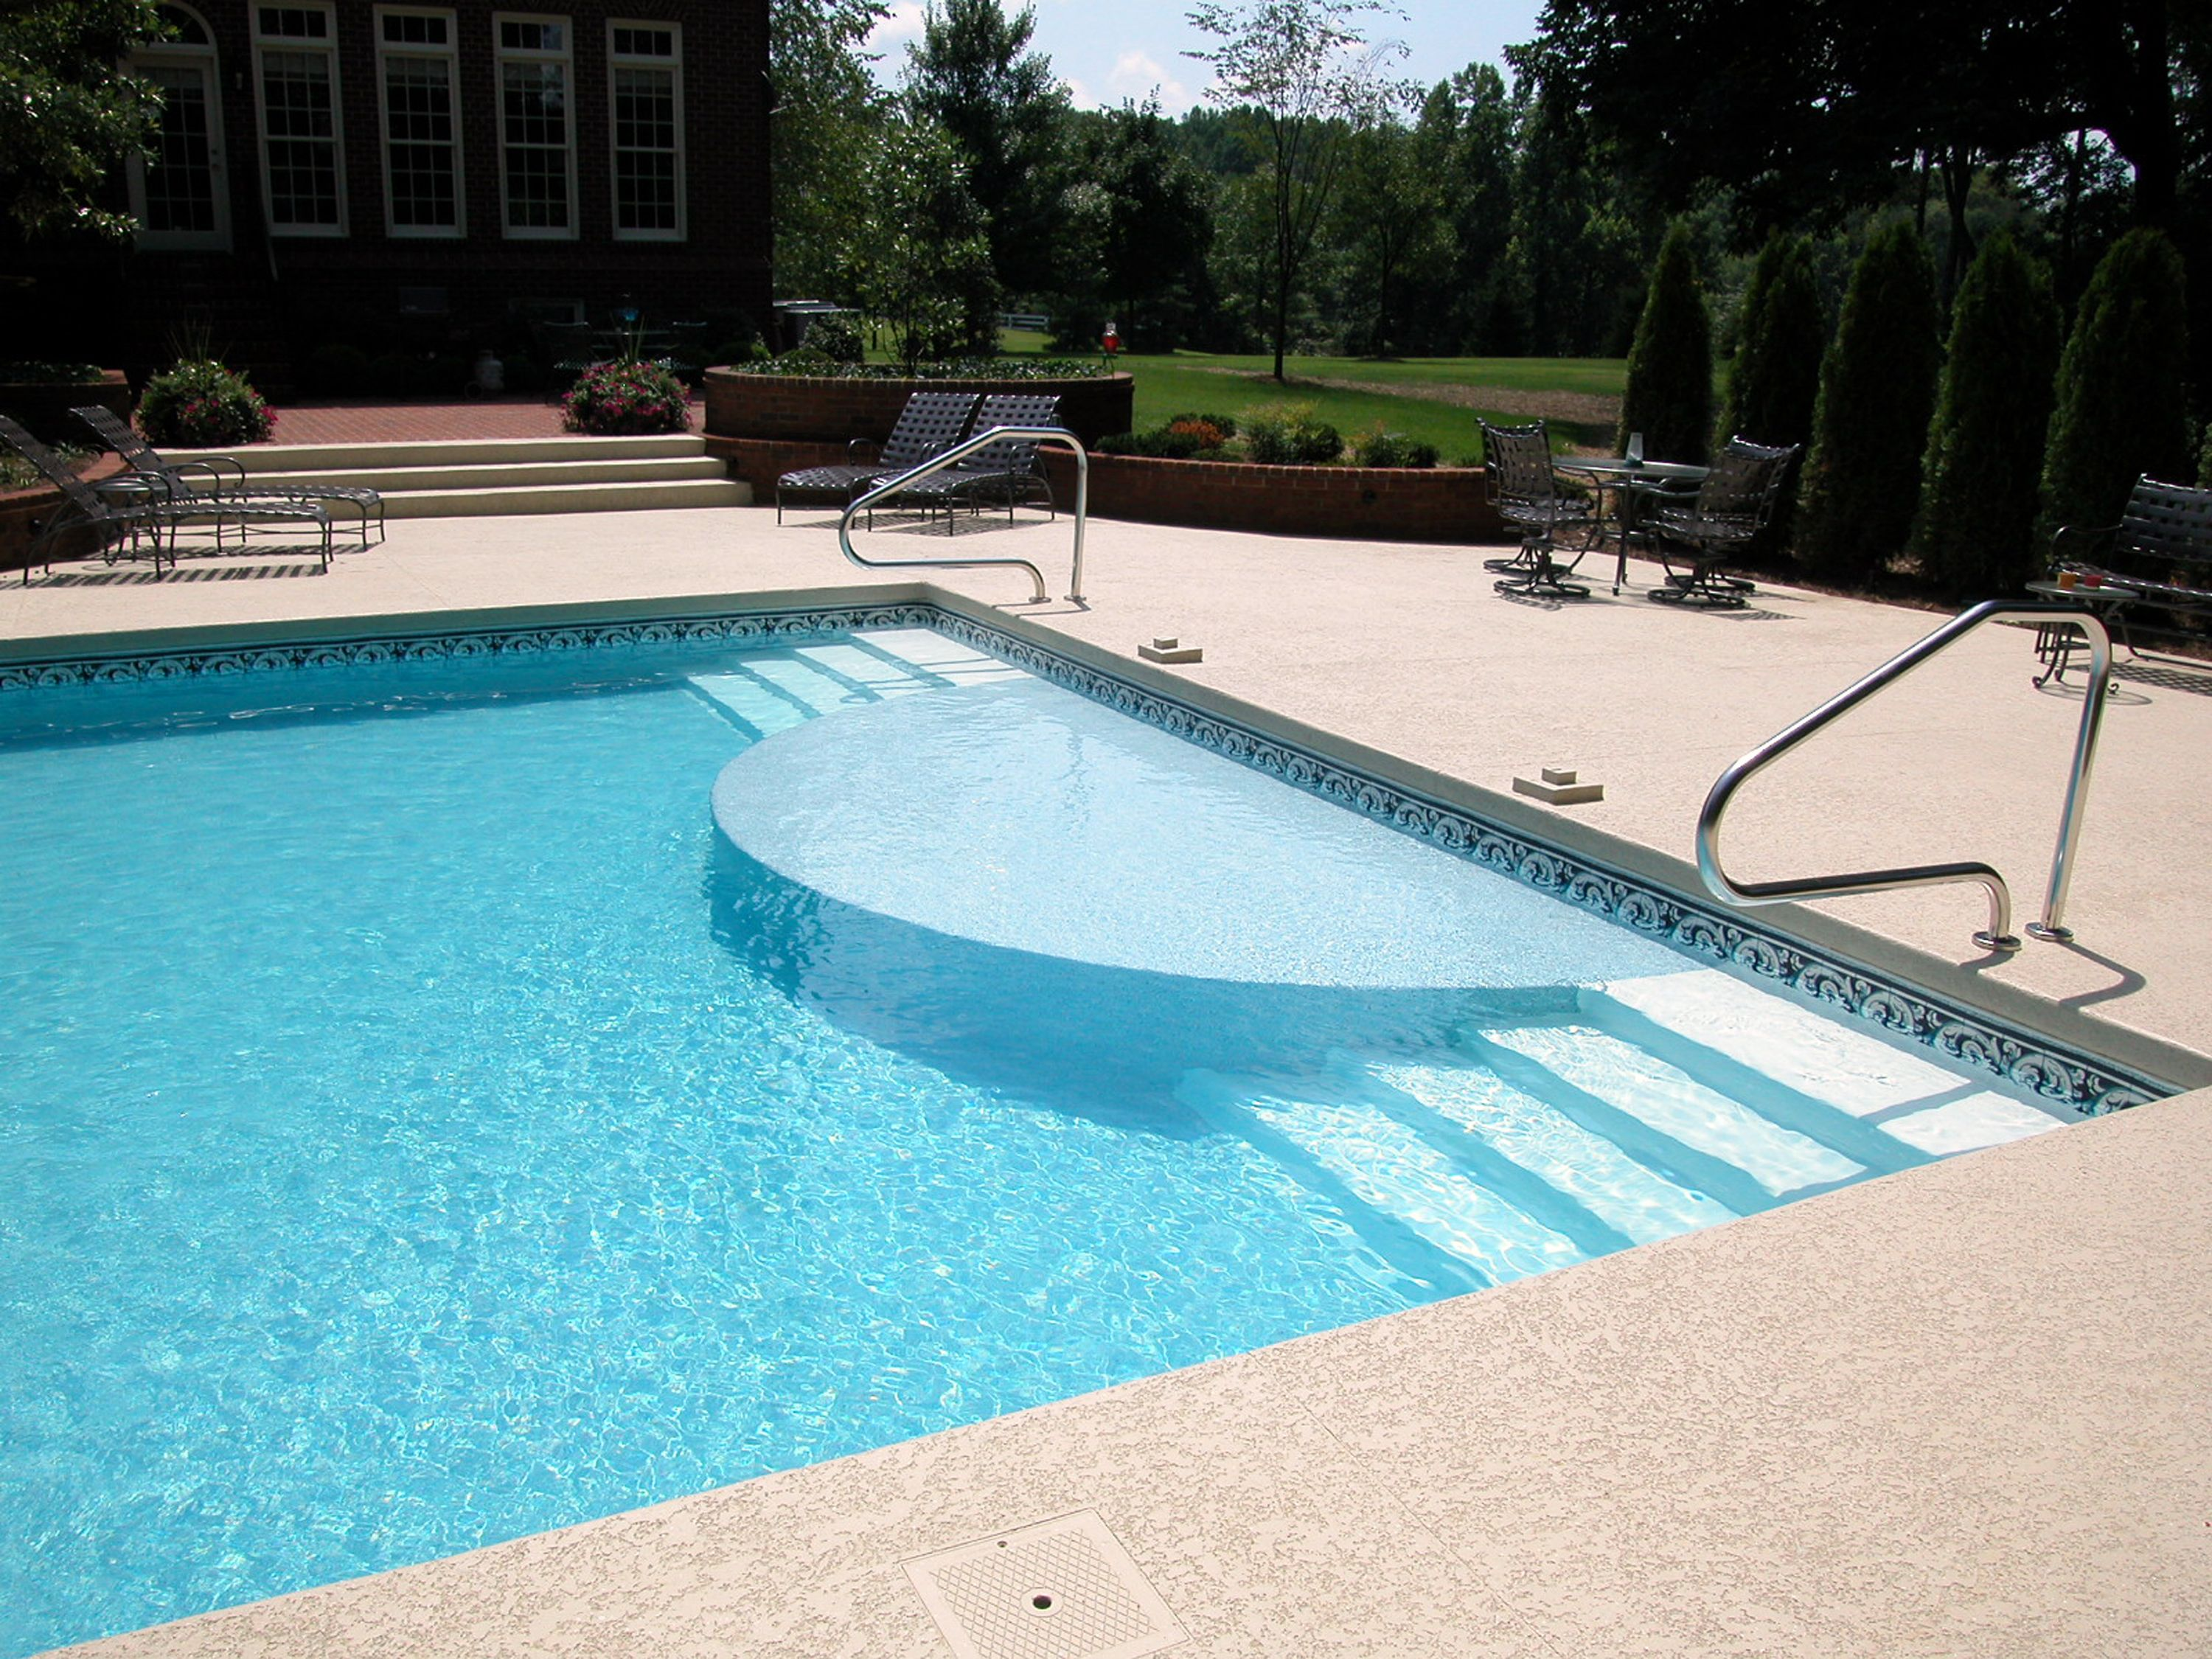 clayton lambert vinyl liner pool with custom sundeck and steps